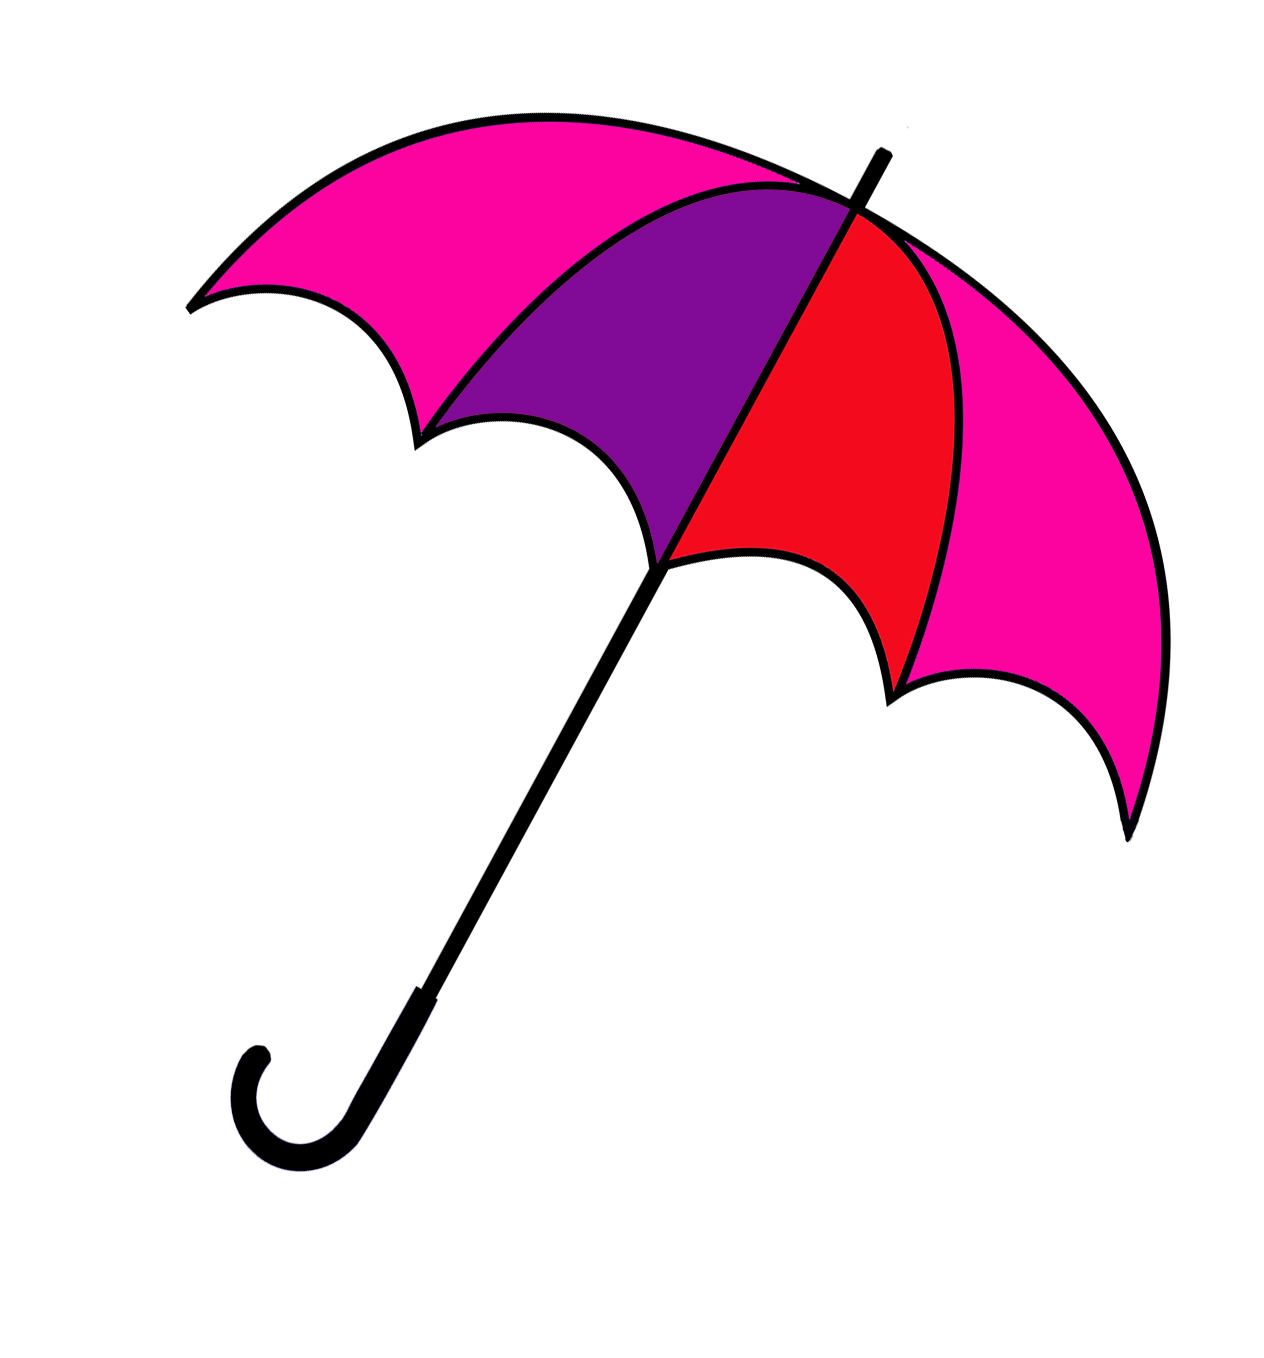 pink and red umbrella image